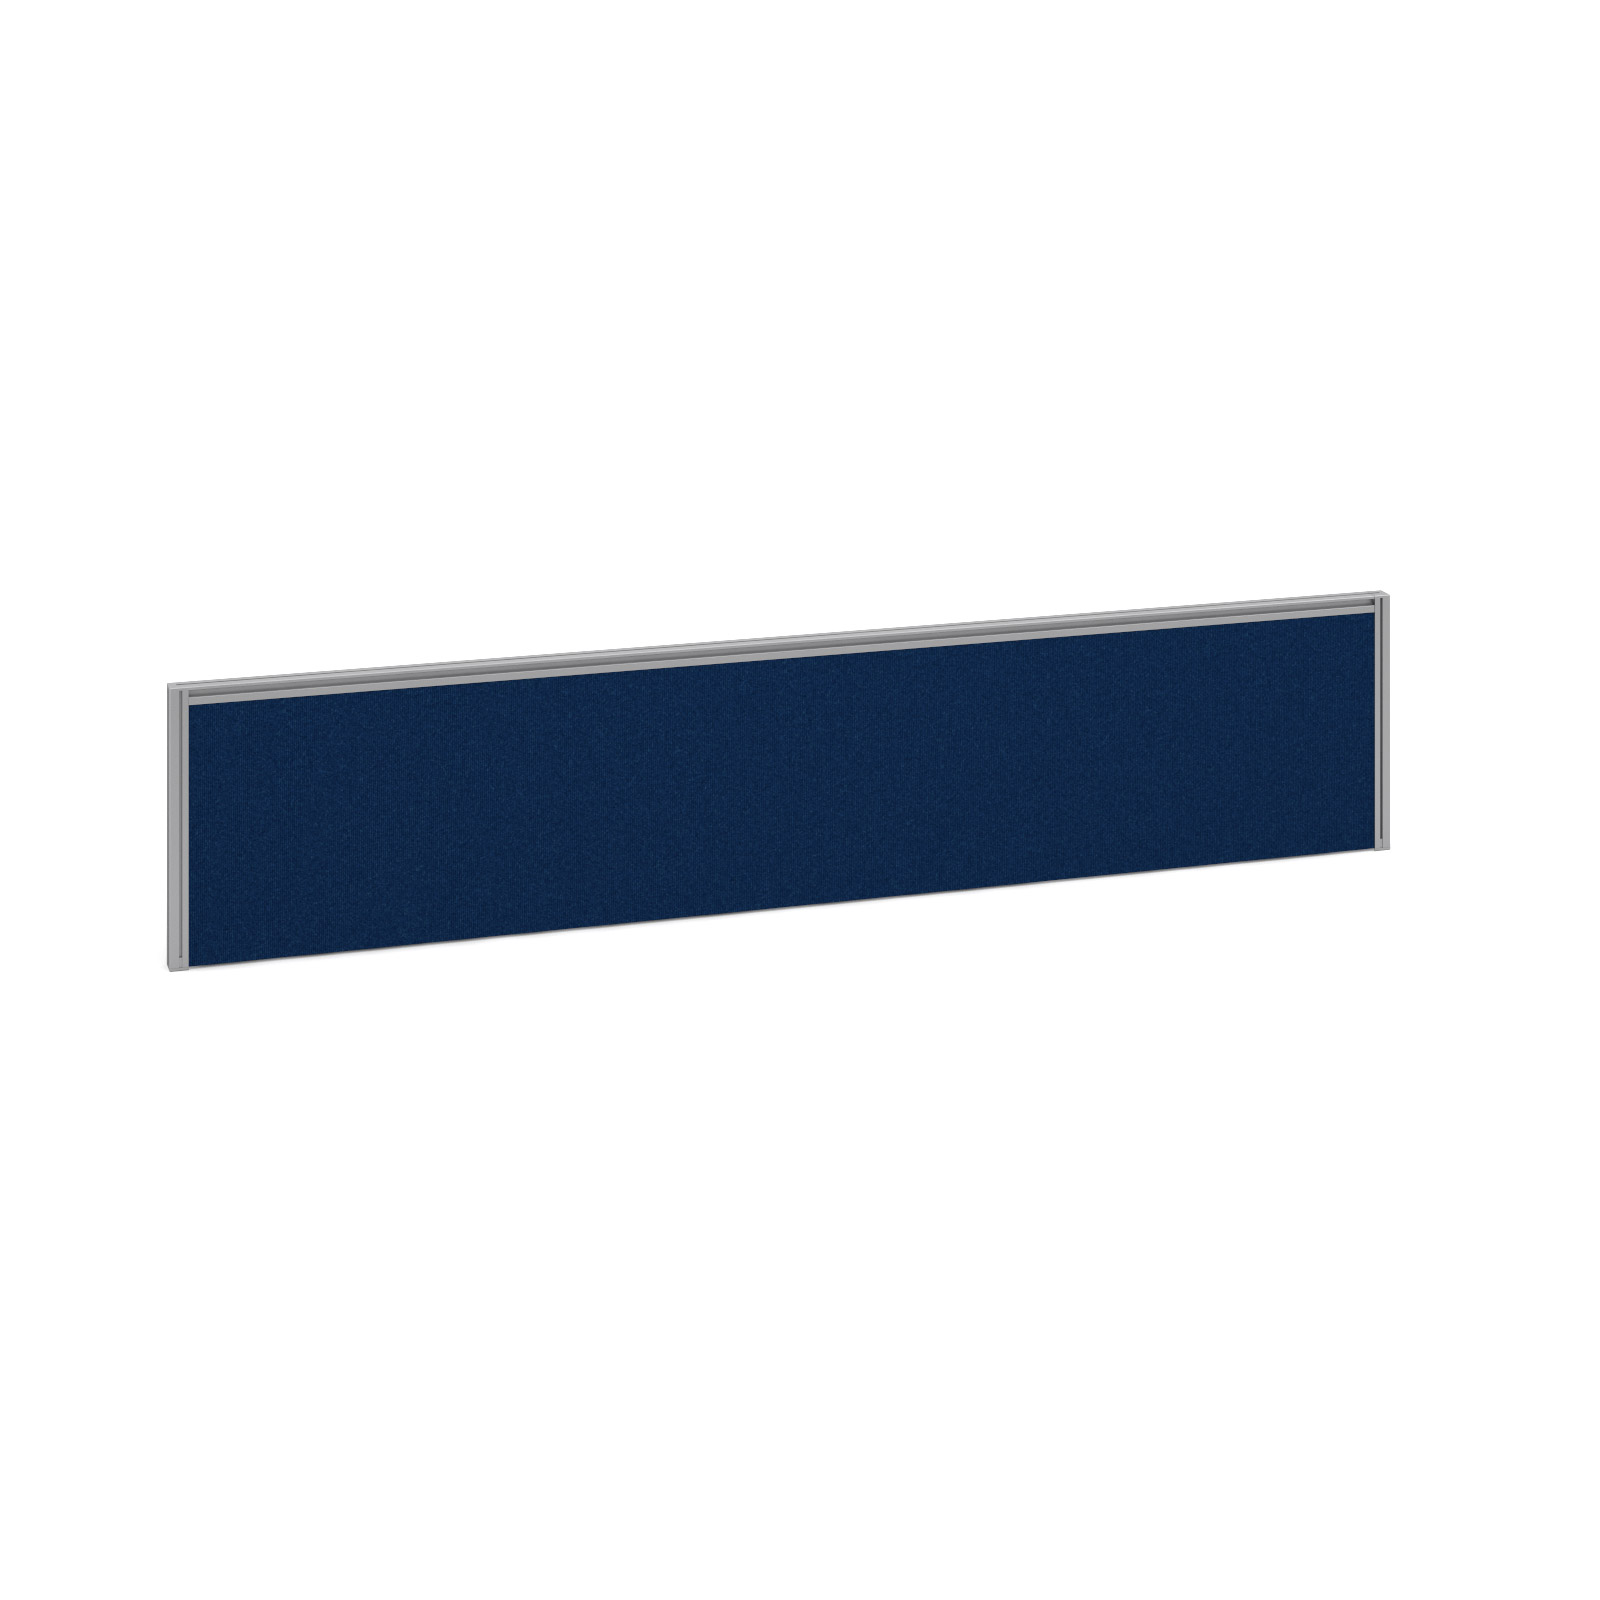 1800mm Deluxe Fabric Rear Screen -  Silver Frame - Blue Fabric